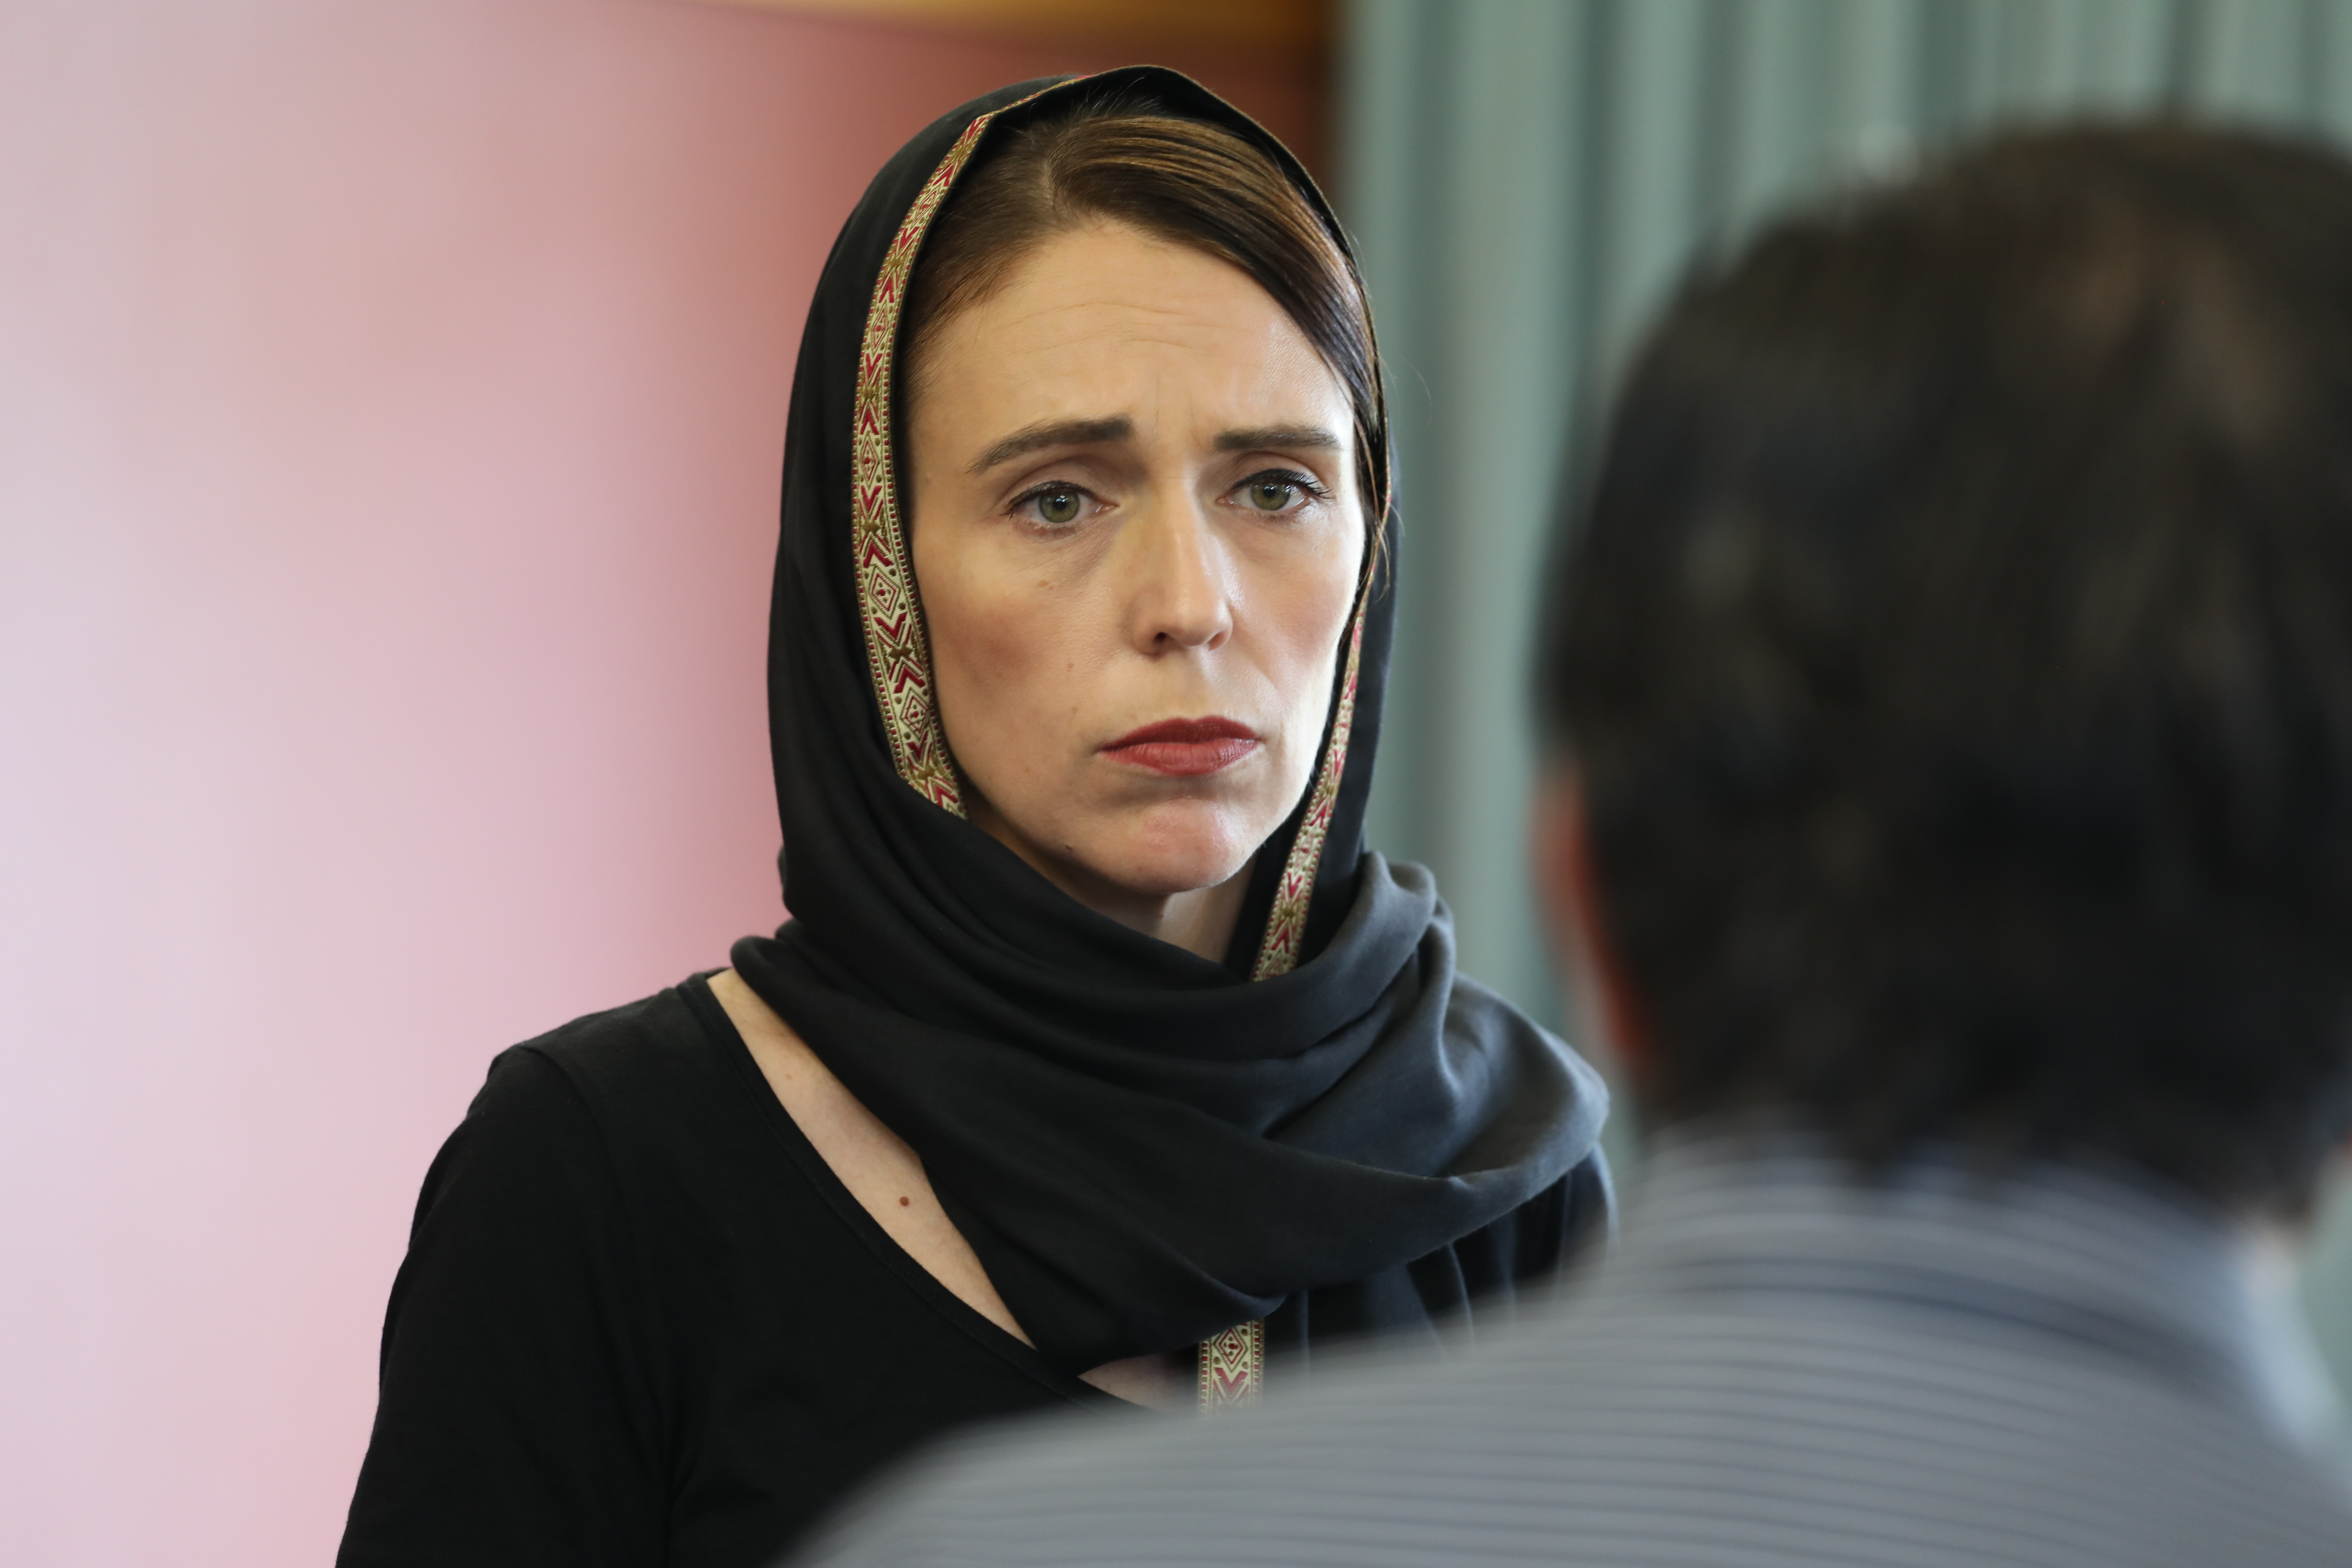 In this handout photo provided by the Office of the Prime Minister of New Zealand, New Zealand Prime Minister Jacinda Ardern meets with Muslim community representatives on March 16, 2019 in Christchurch, New Zealand. (Getty Images)